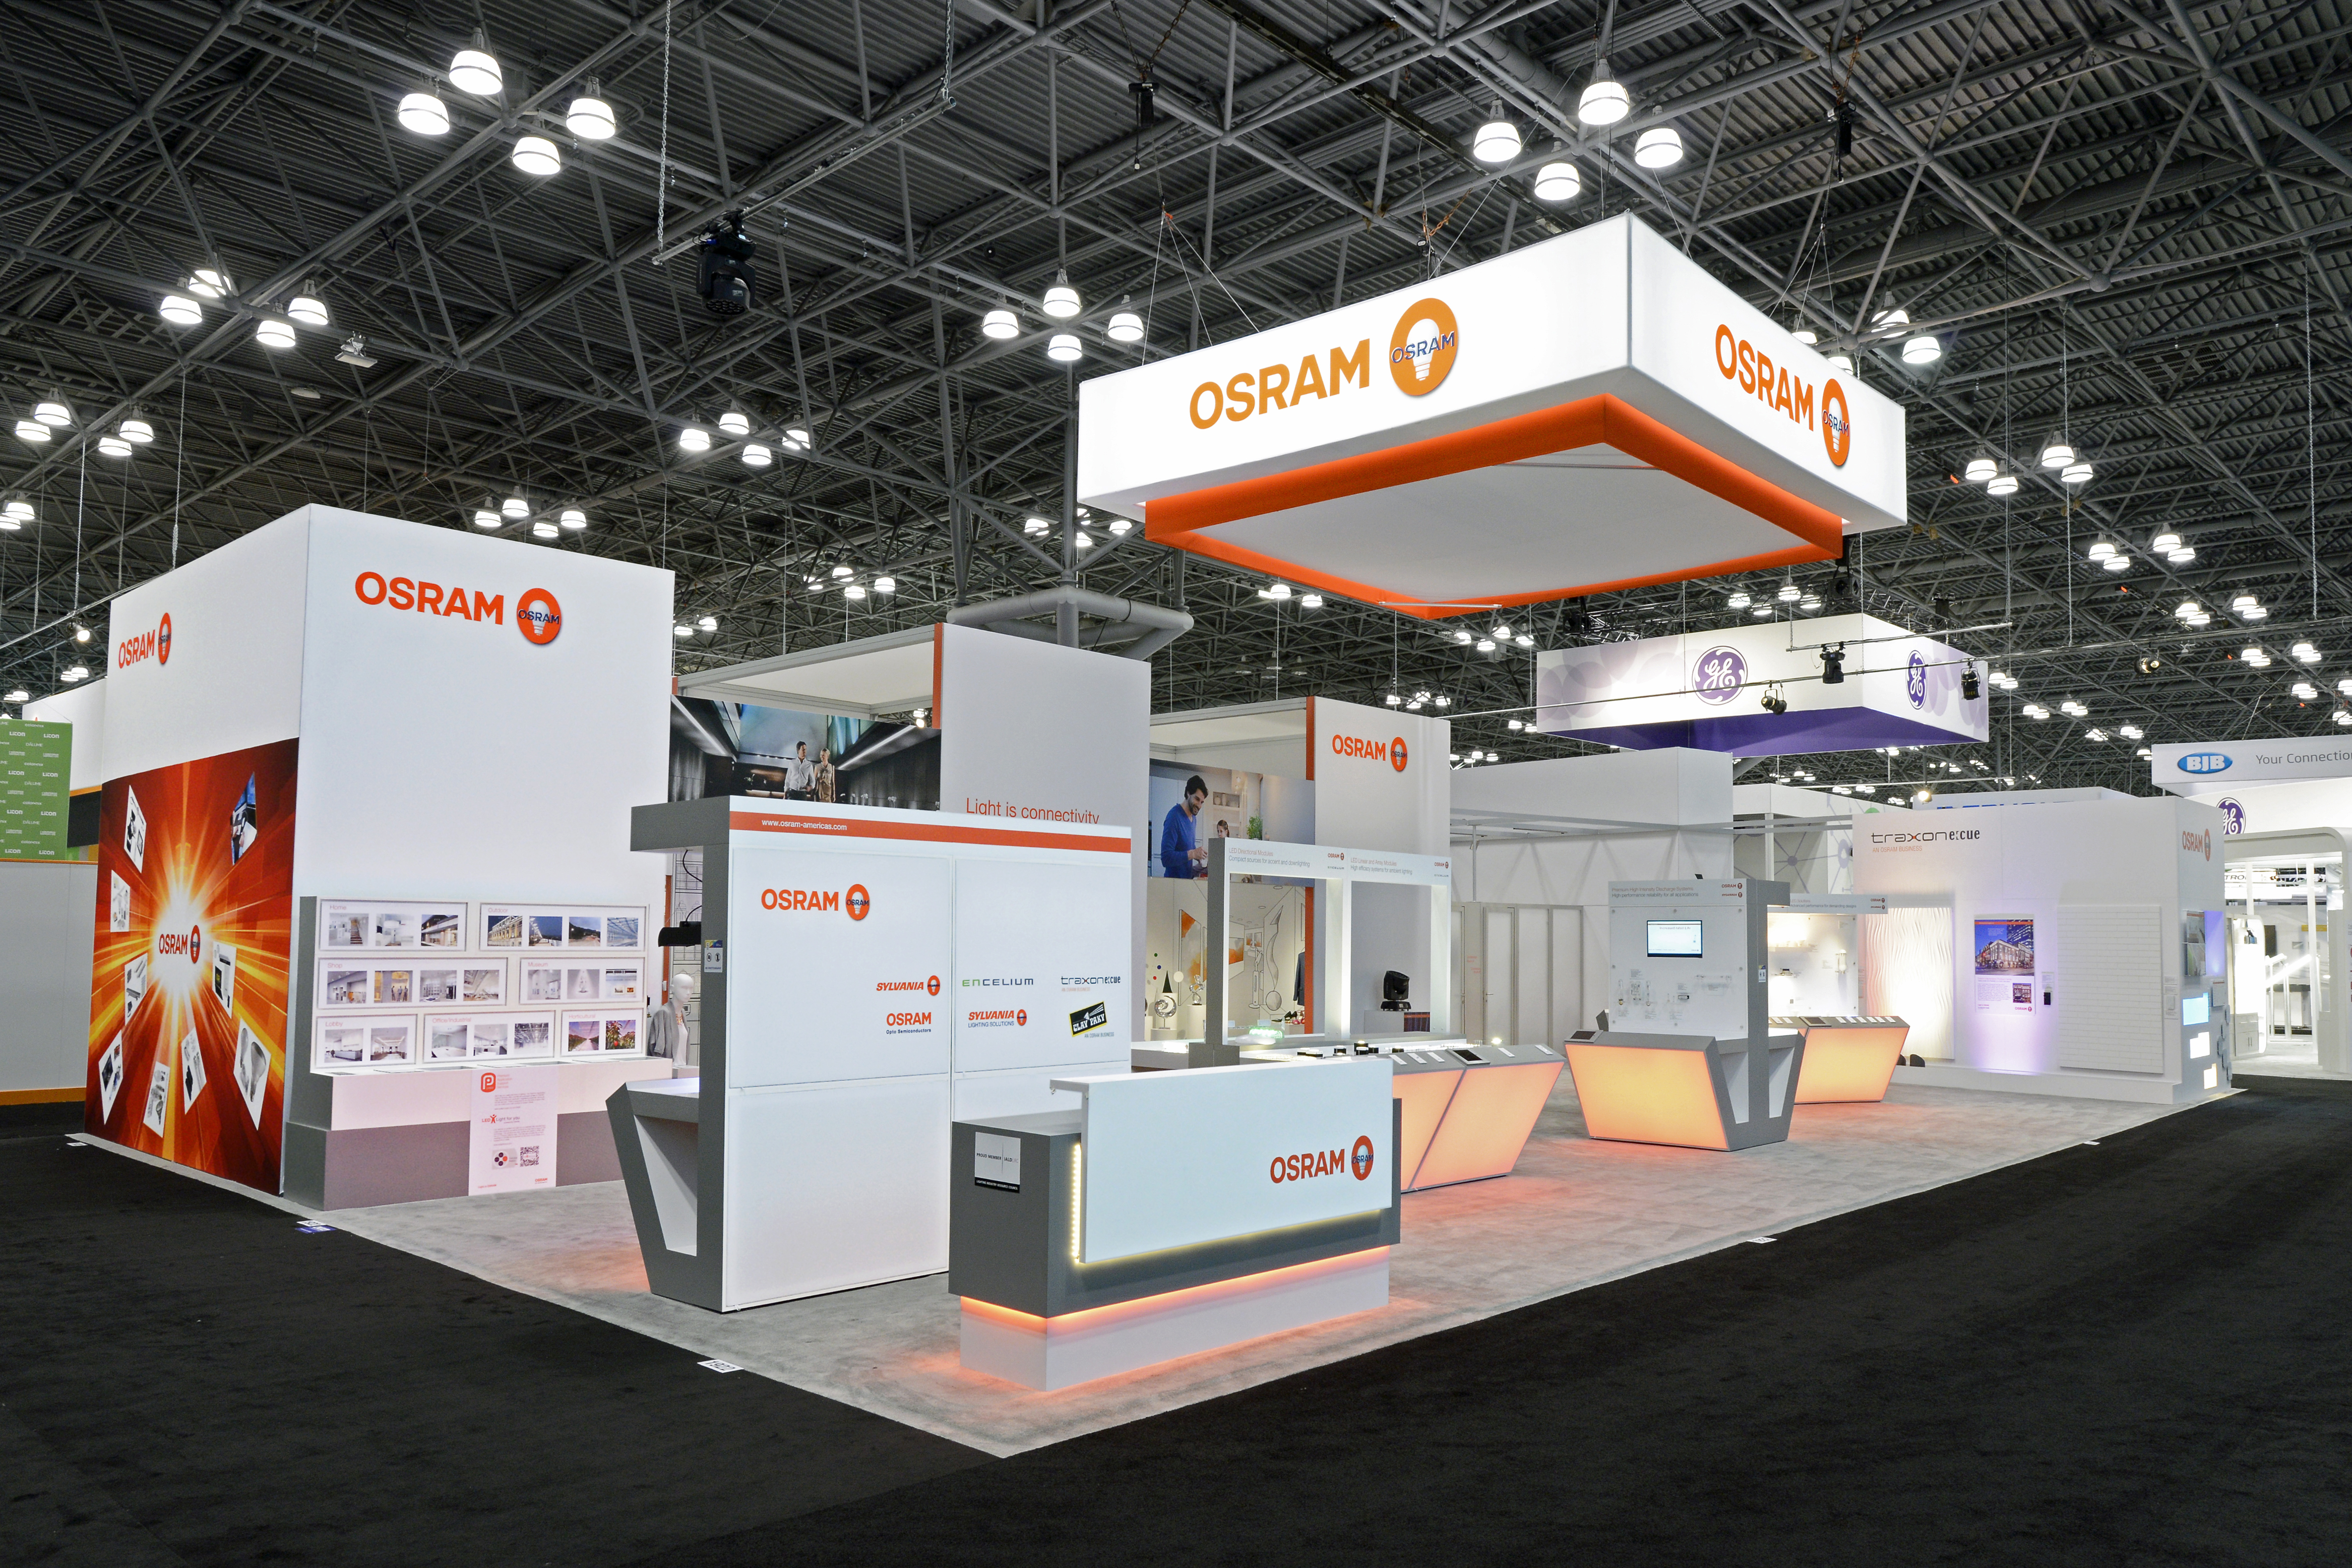 Custom Trade Show Exhibit design and built by Creatacor, Inc. in Clifton Park, NY. Serving the Northeast, Upstate New York, the Albany Capital Region and the entire nation.